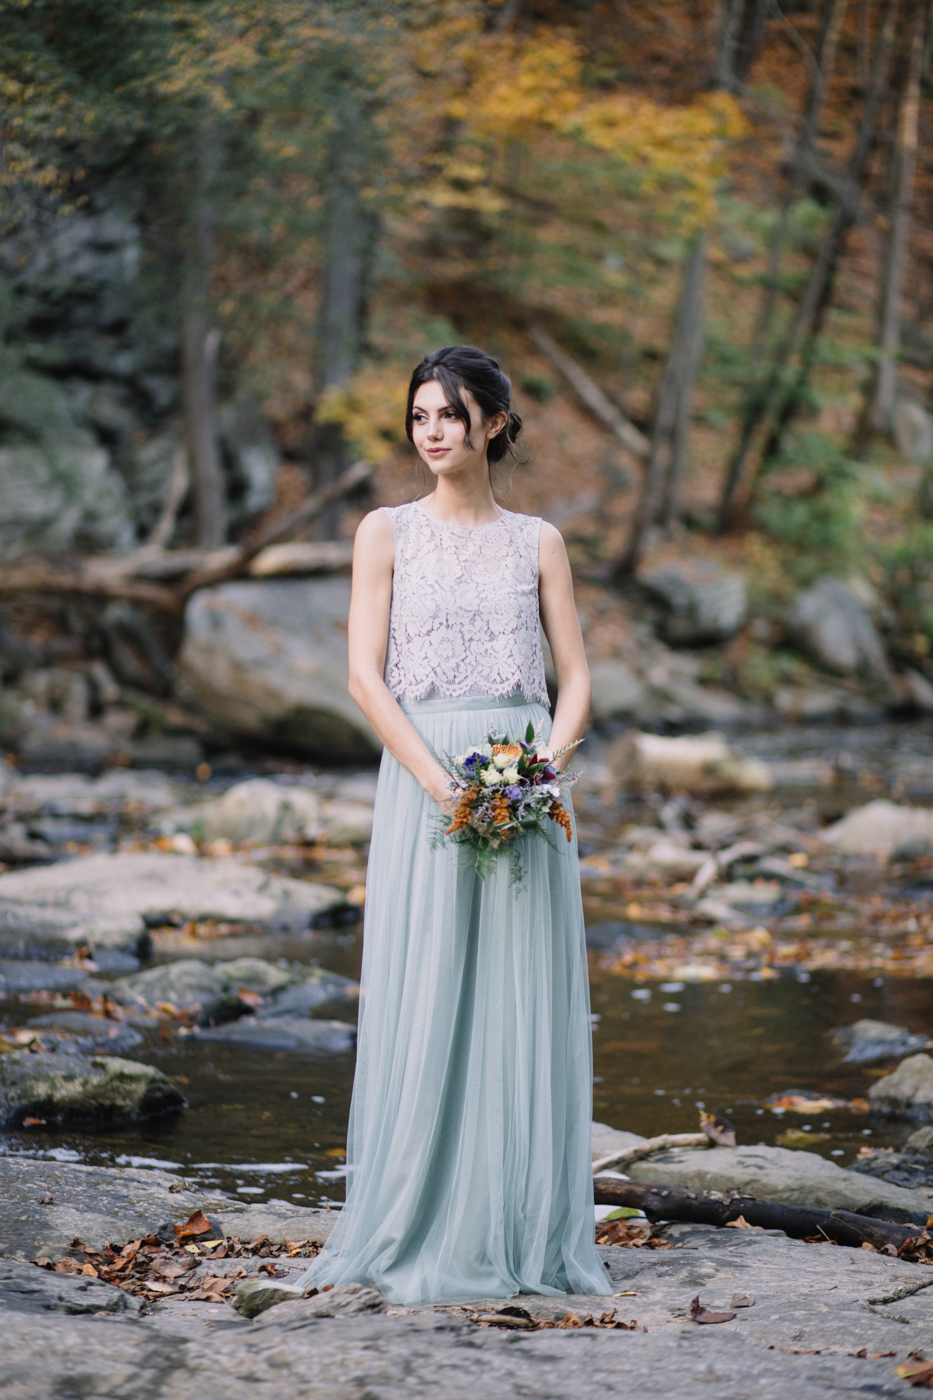 philadelphia-wedding-photographer-valley-green-inn-boho-geode-whimsical-philly-waterfall-weddings-photography-fine-art-75.jpg